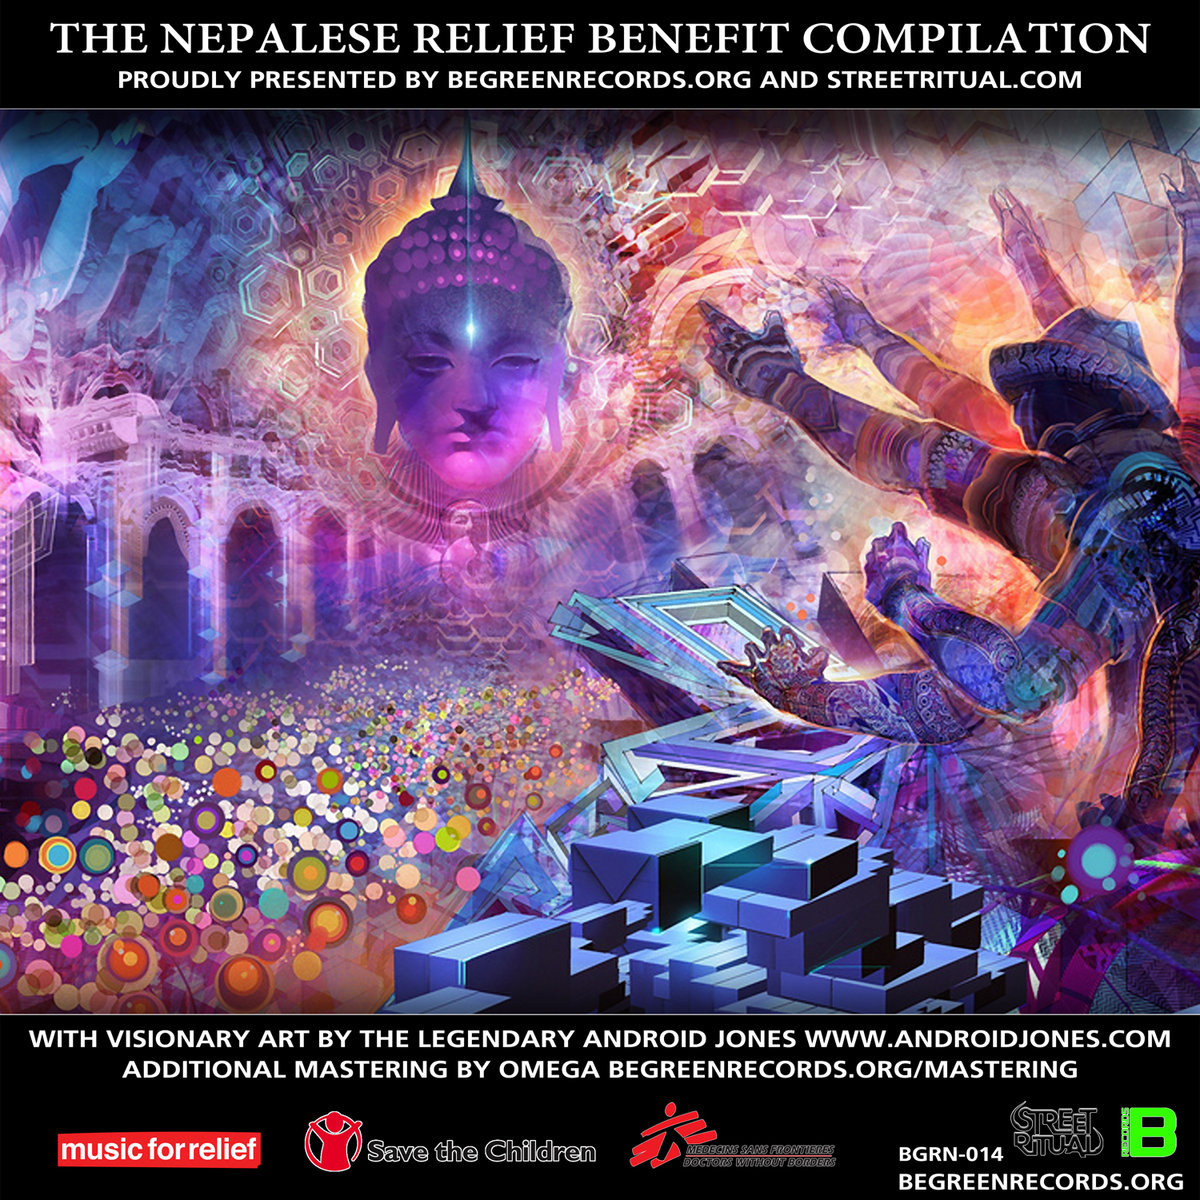 Knowa Lusion - Neon Rays @ 'Various Artists - The Nepalese Relief Benefit Compilation' album (bass, electronic)